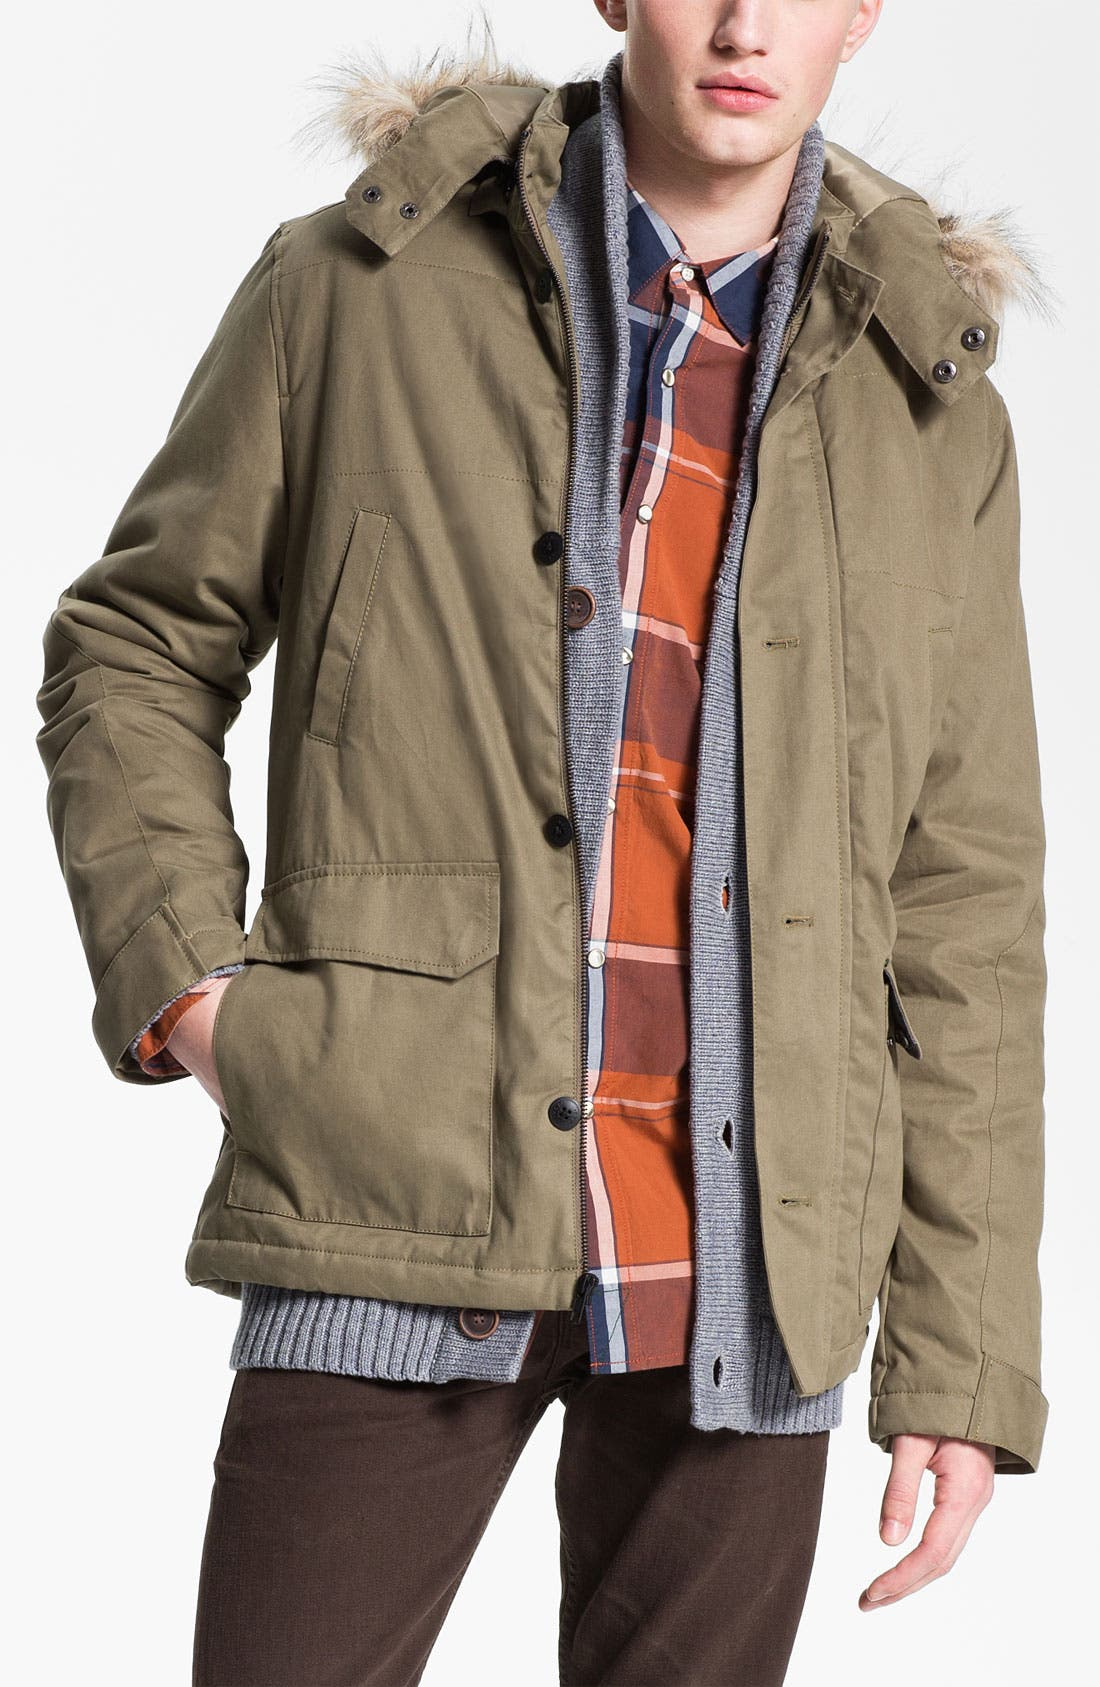 Alternate Image 1 Selected - R44 Rogan Standard Issue 'Travelers' Organic Cotton Parka